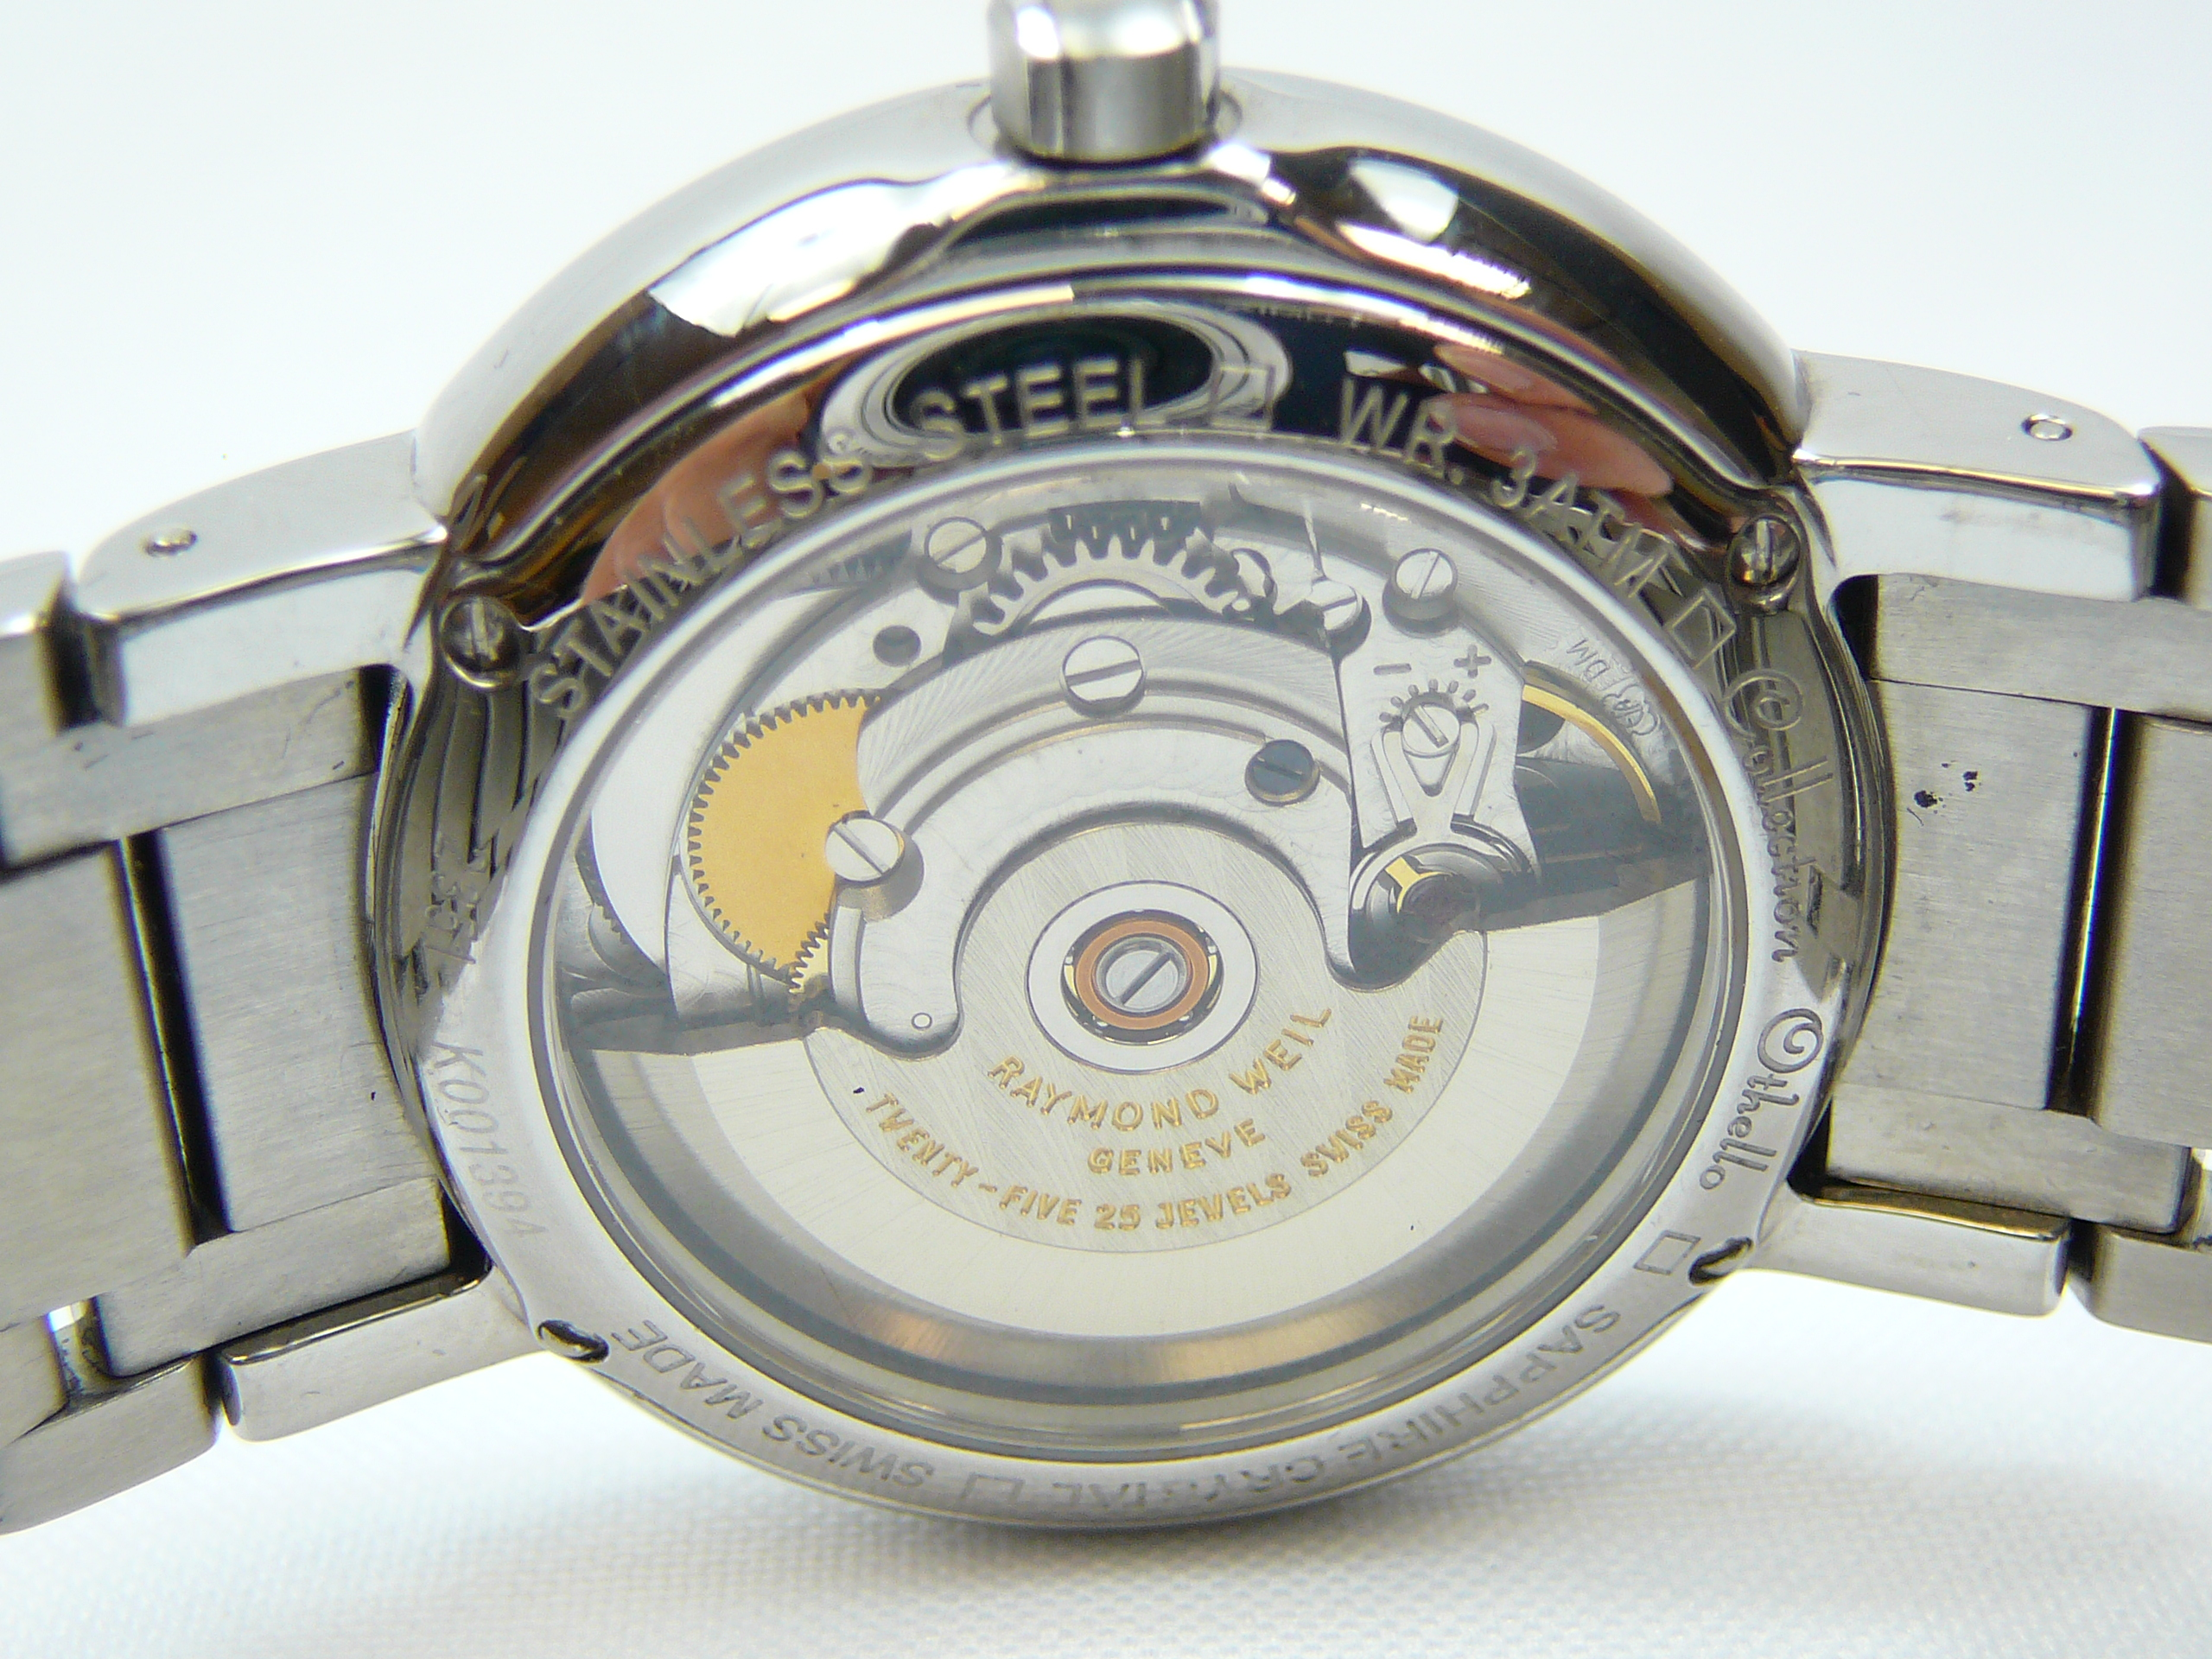 Gents Raymond Weil Wrist Watch - Image 3 of 3